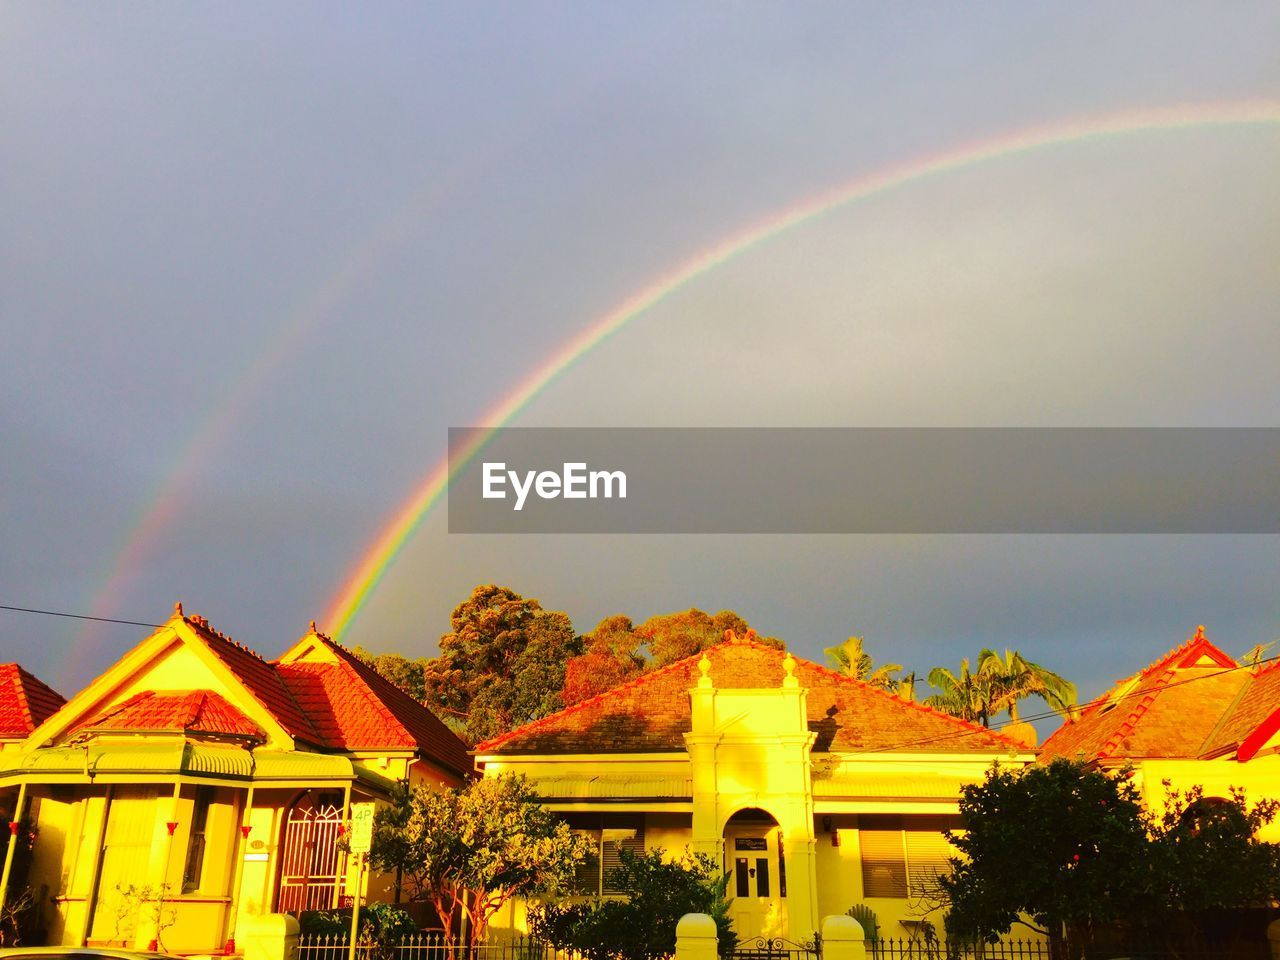 Beautiful view of double rainbow over houses